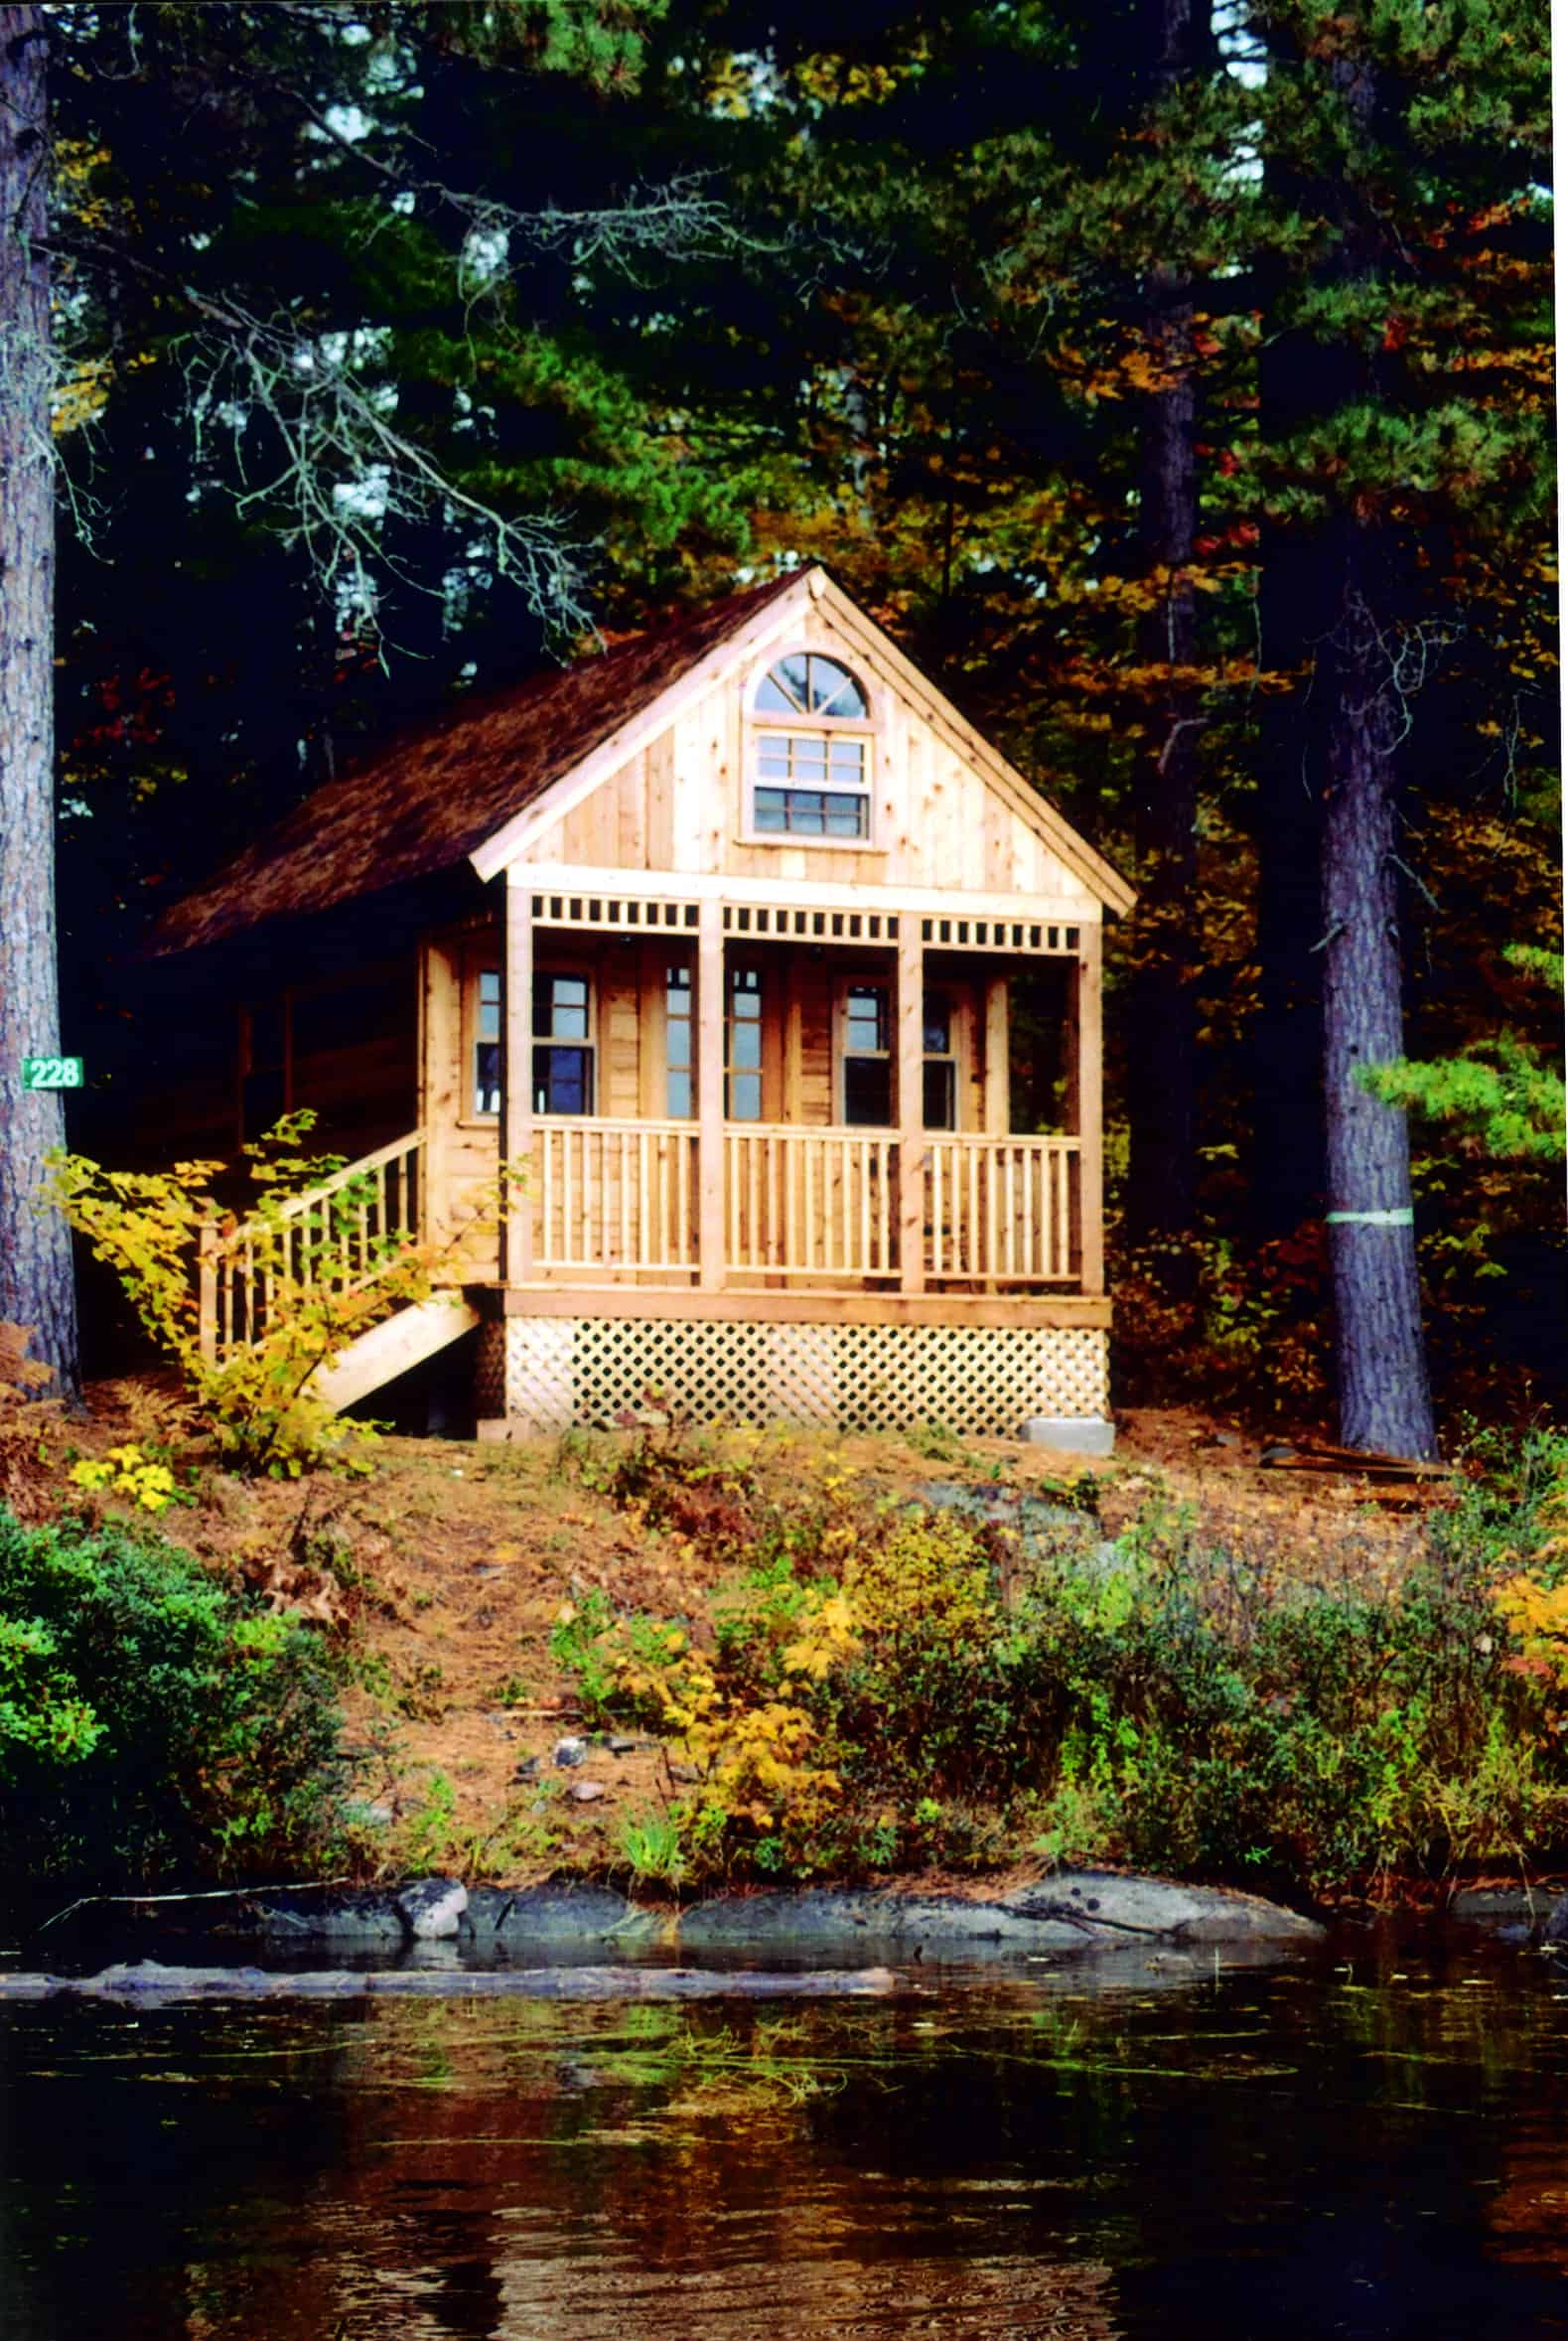 10 Picturesque Small Cabins - Summerwood Products